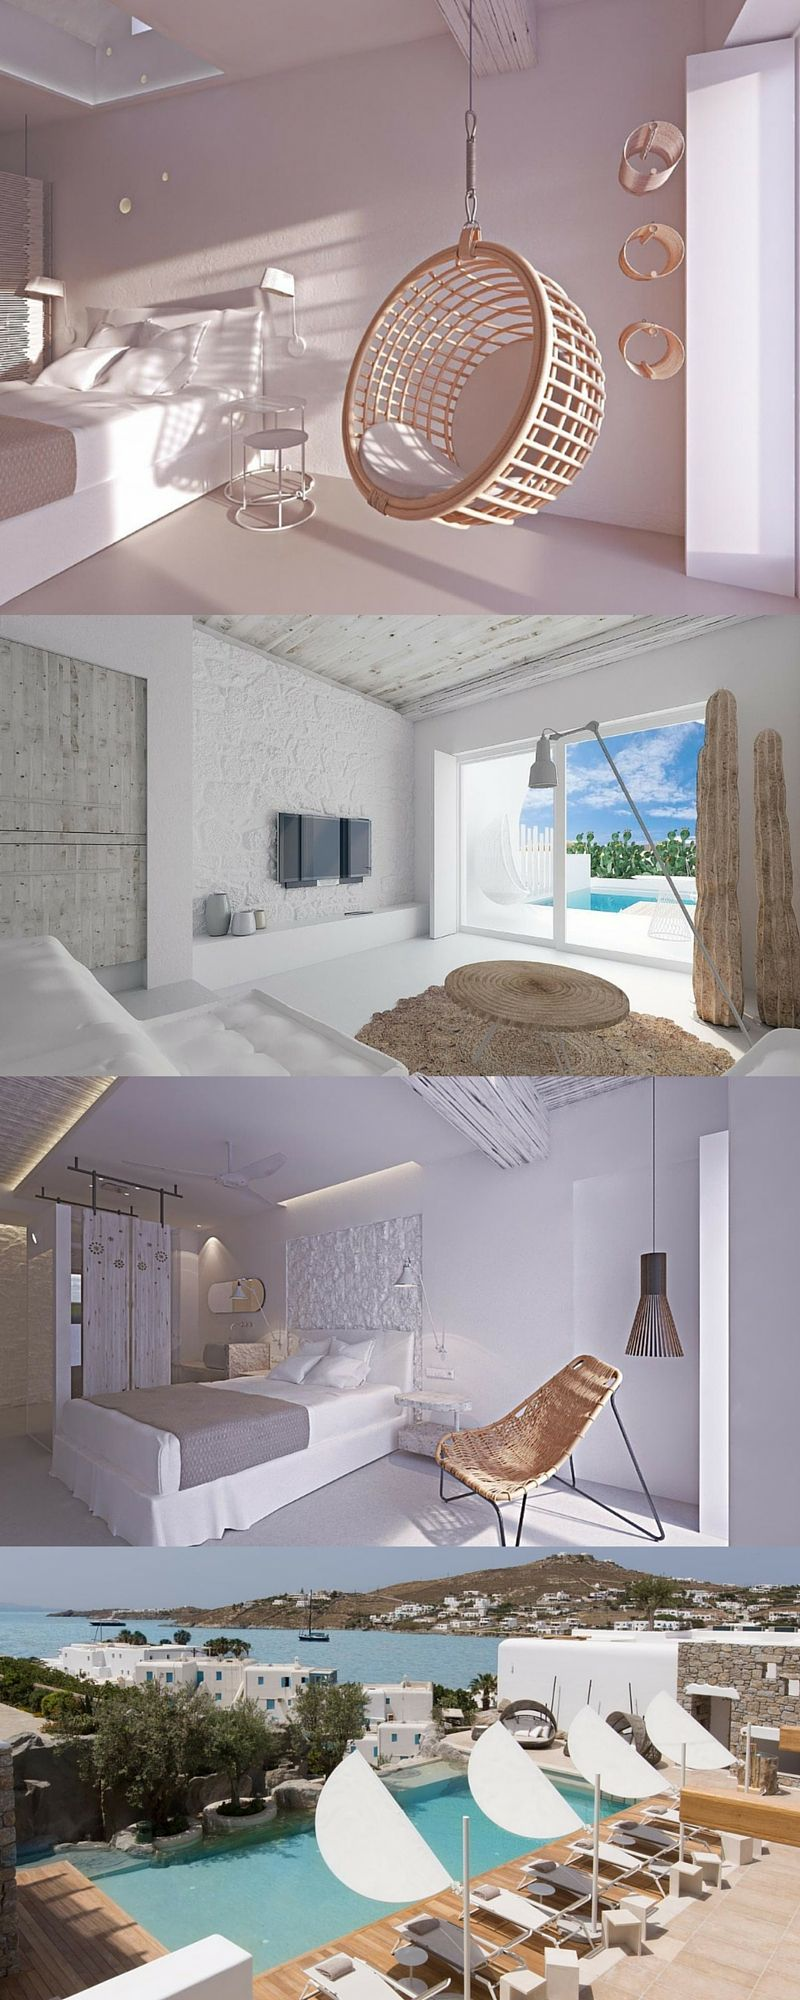 Kensho Boutique Hotel And Suites Combines Elements Of Traditional Cycladic  Architecture And Modern Minimalist Interior Design. #Mykonos #Greekislands  # ...